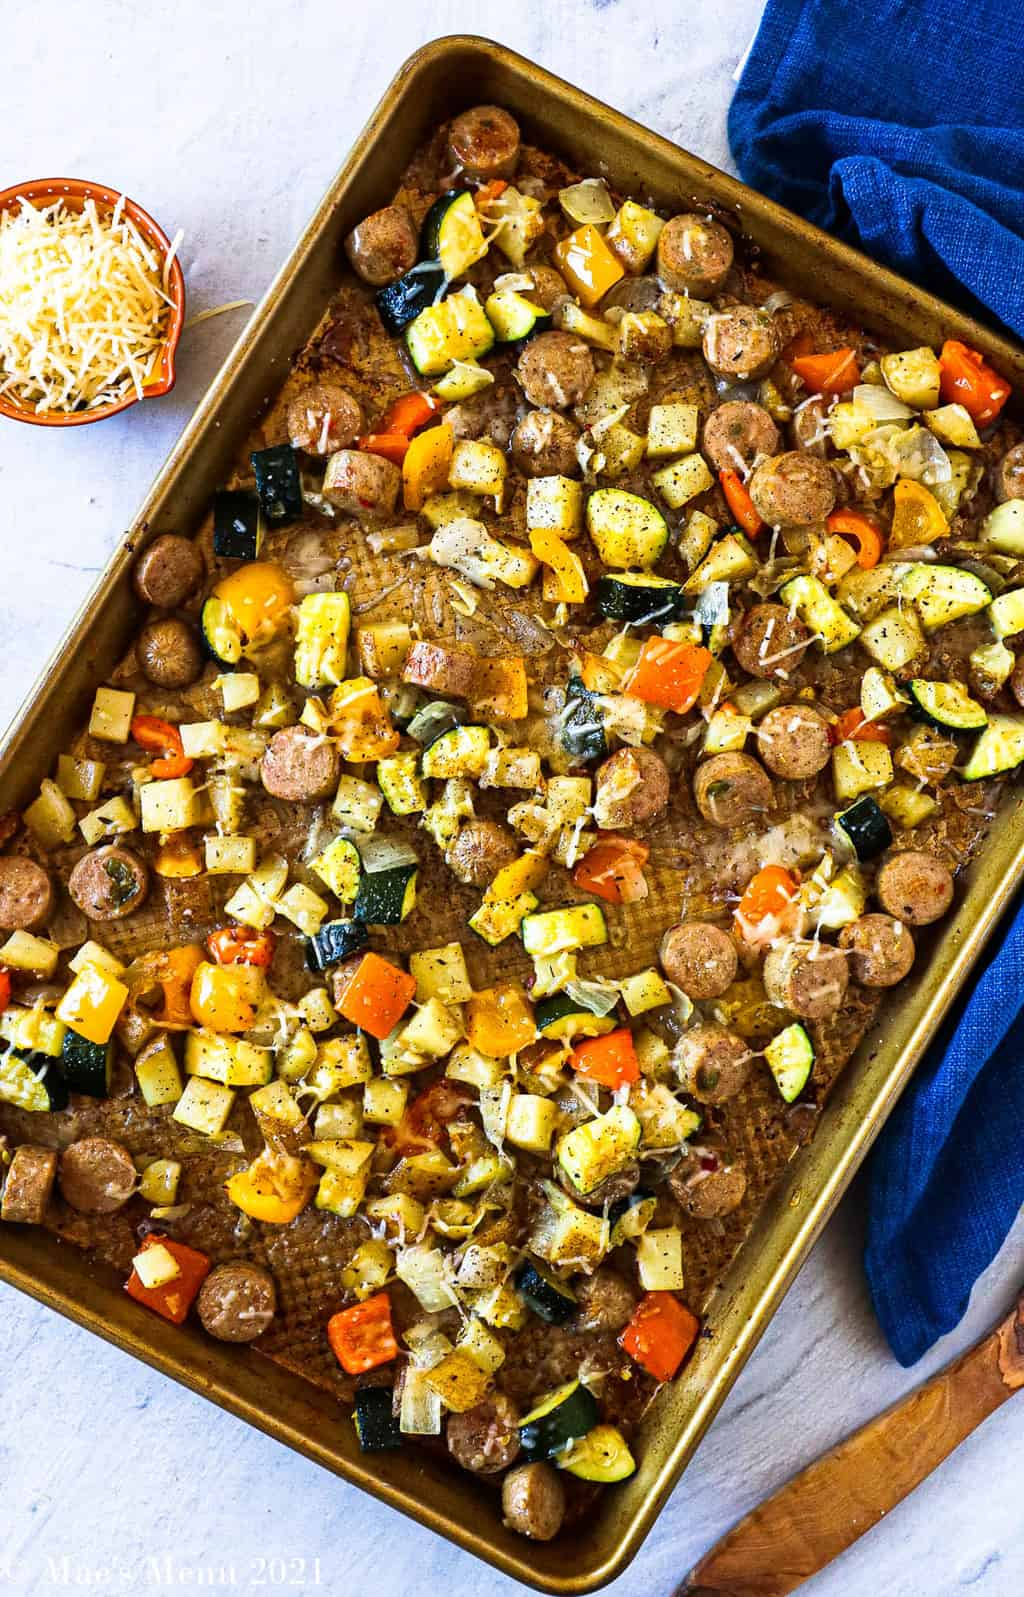 An overhead shot of a sheet pan with roasted sausage and veggies and melted parmesan cheese